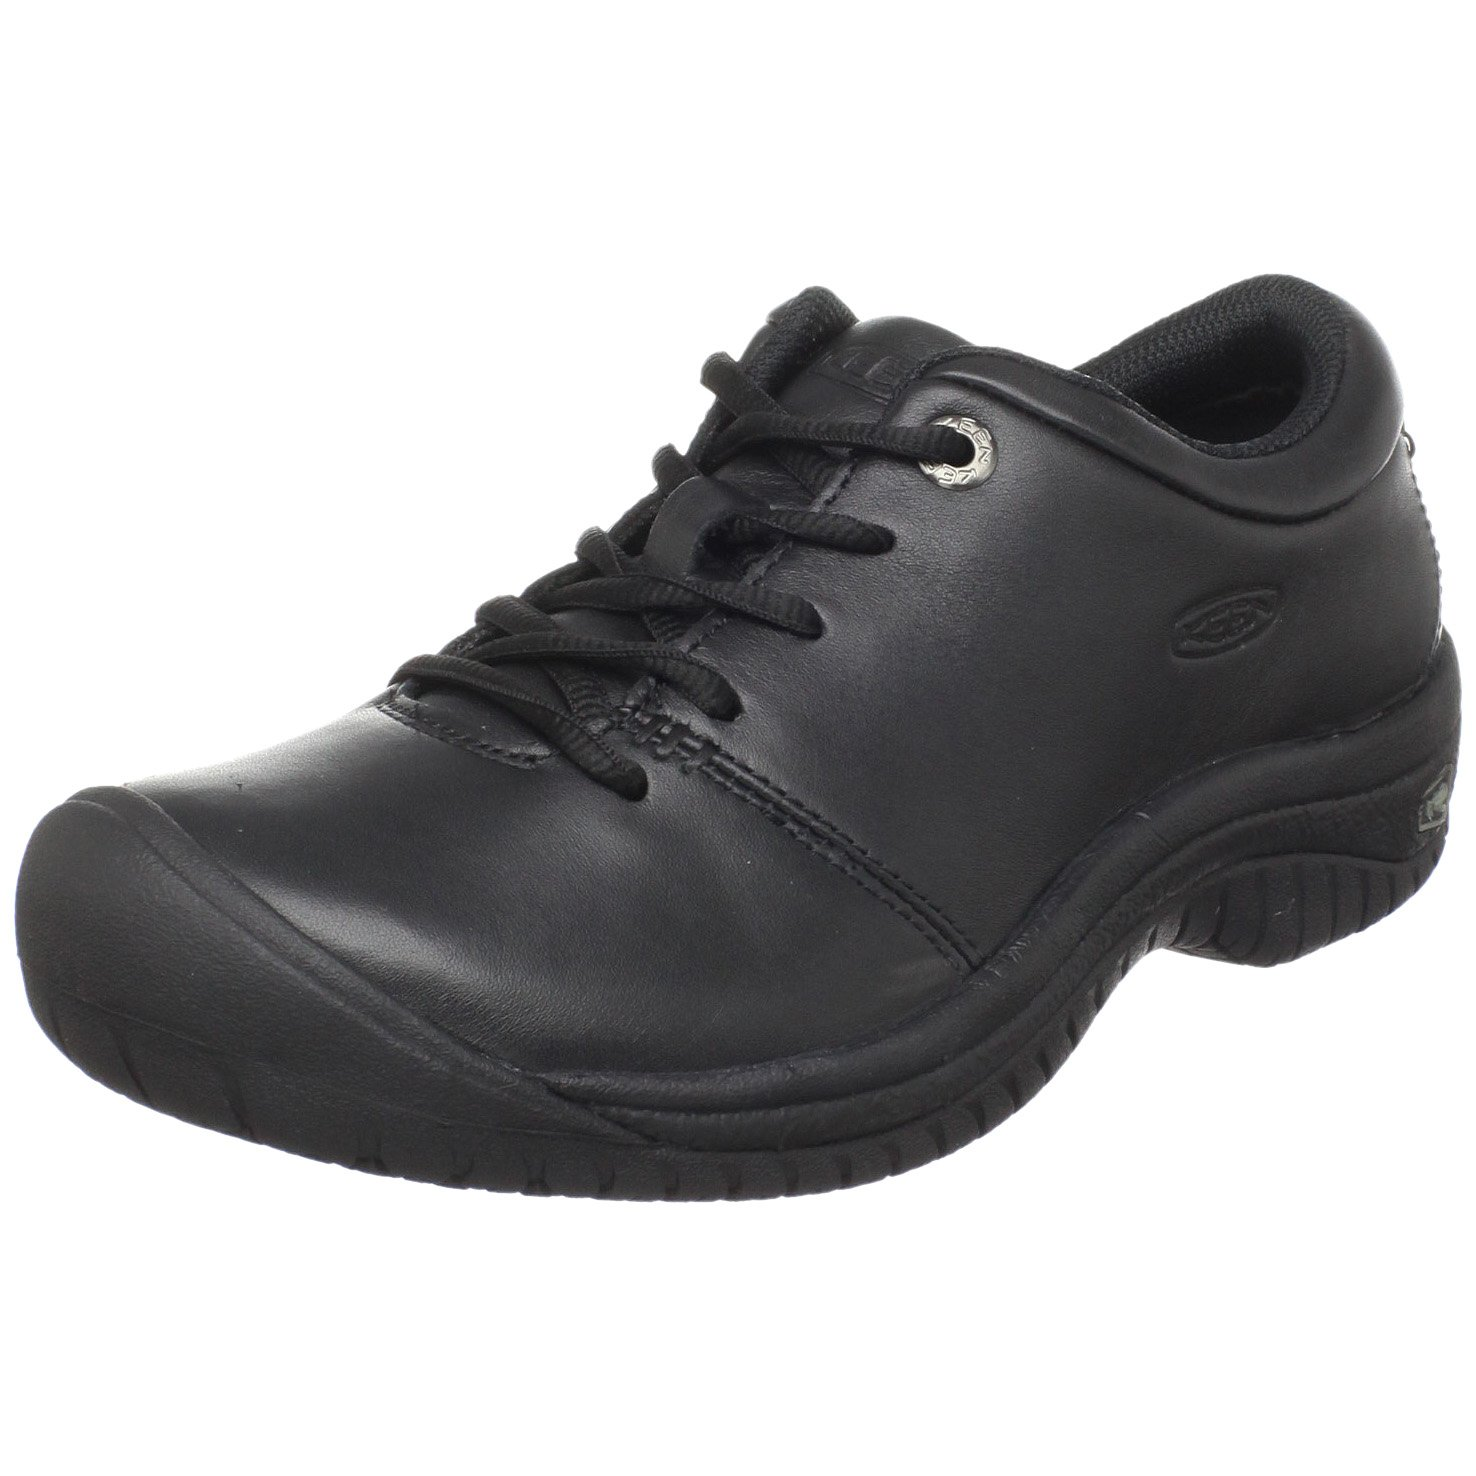 KEEN Utility Women's PTC Oxford Work Shoe,Black,9 M US